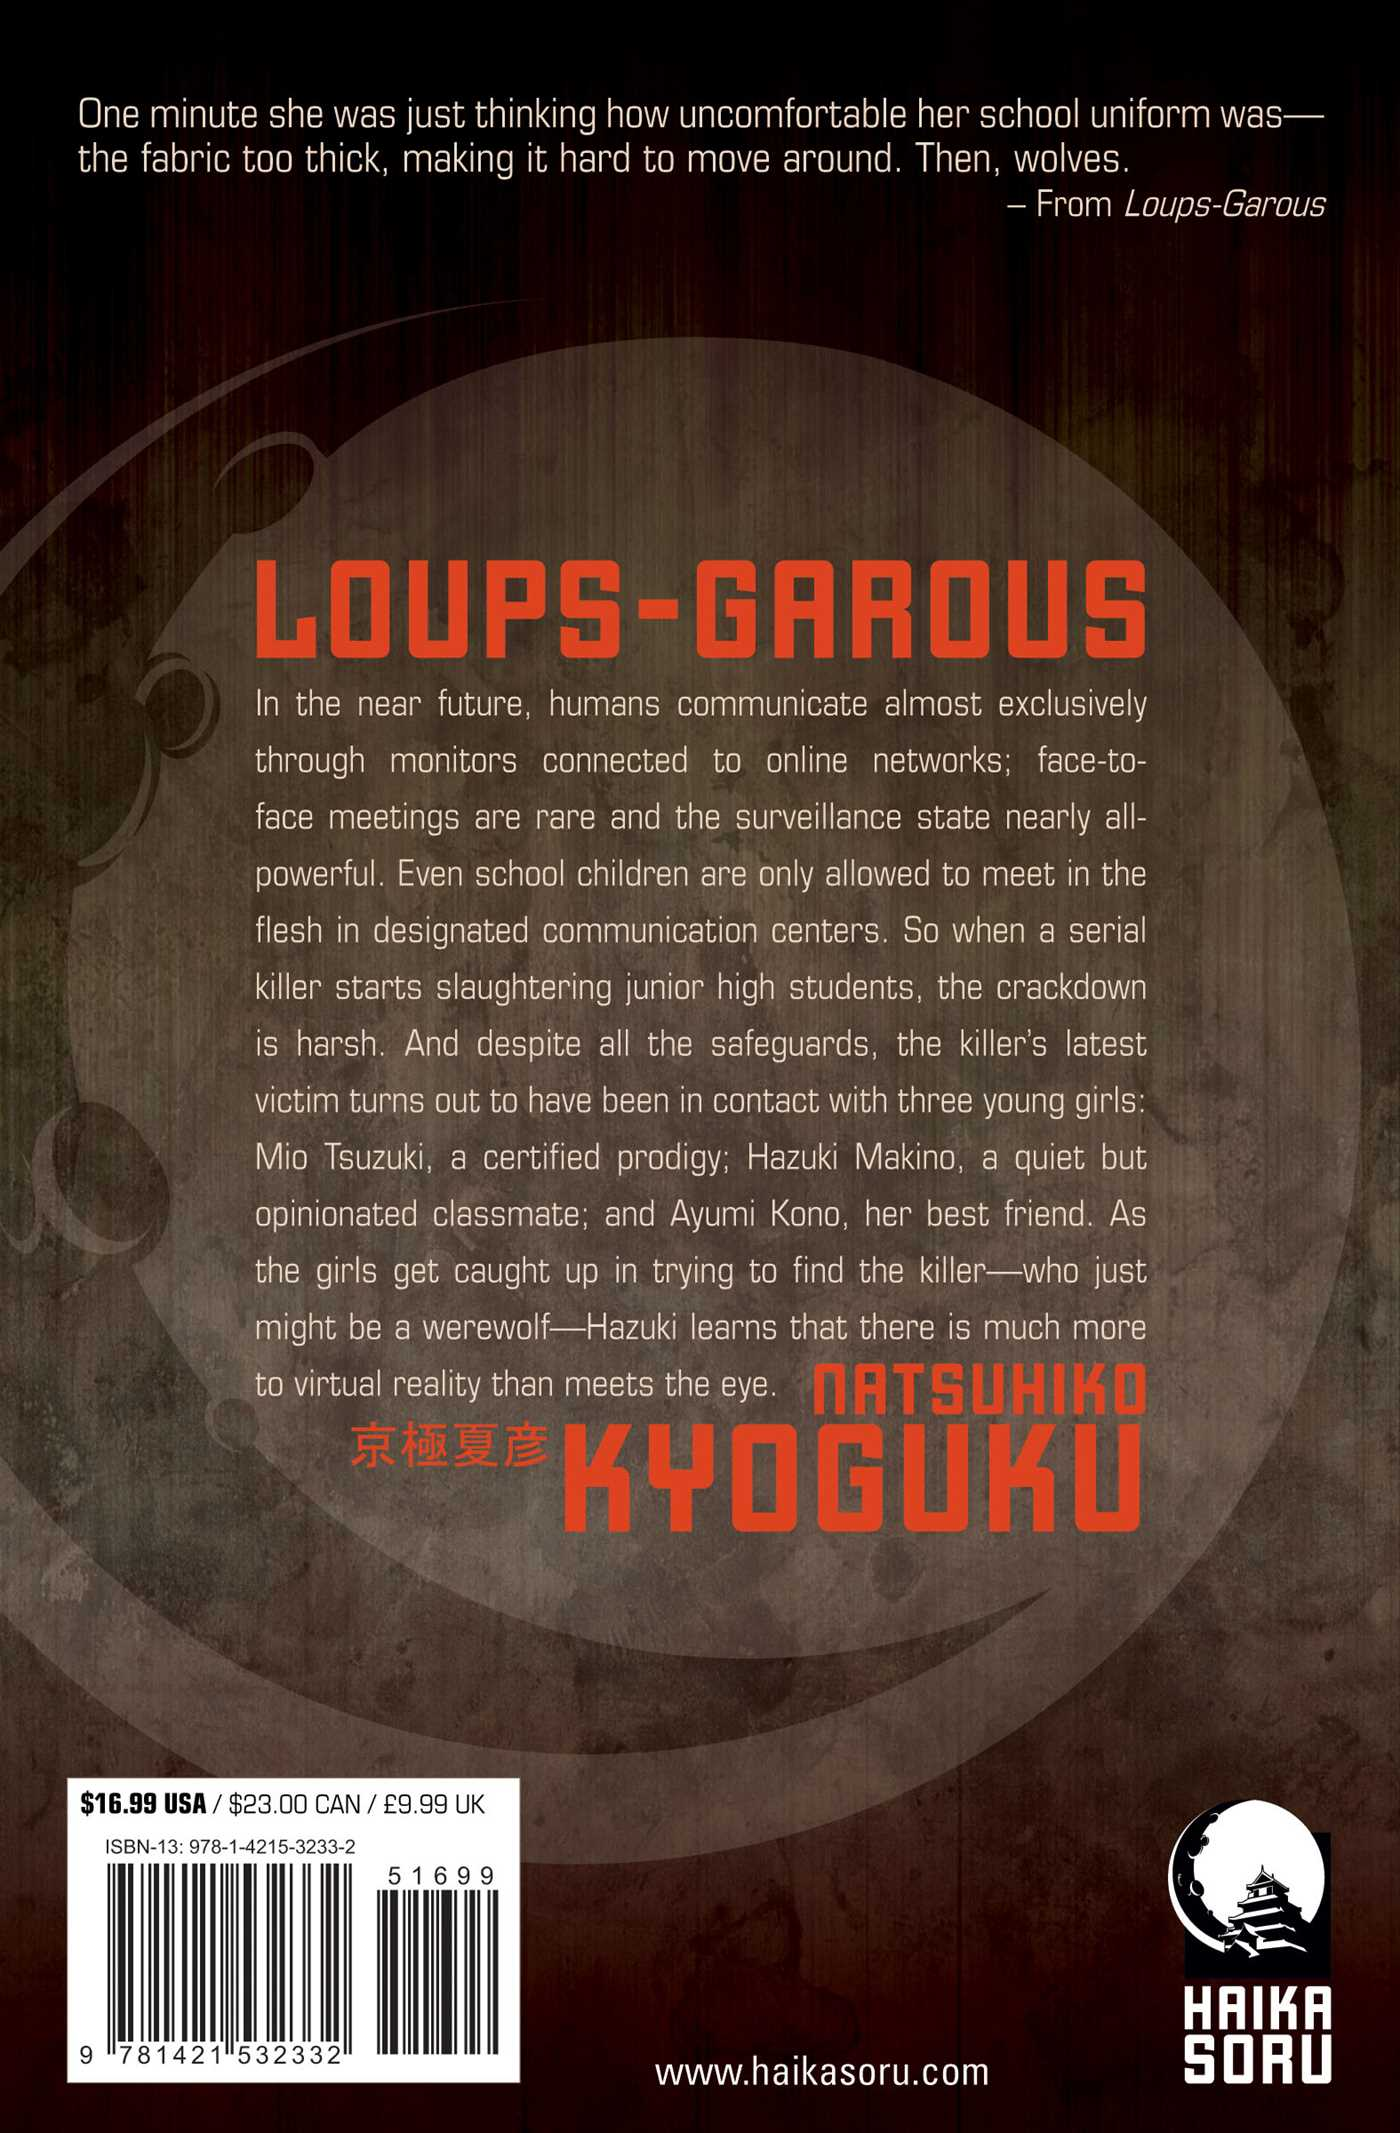 Loups-garous-novel-9781421532332_hr-back